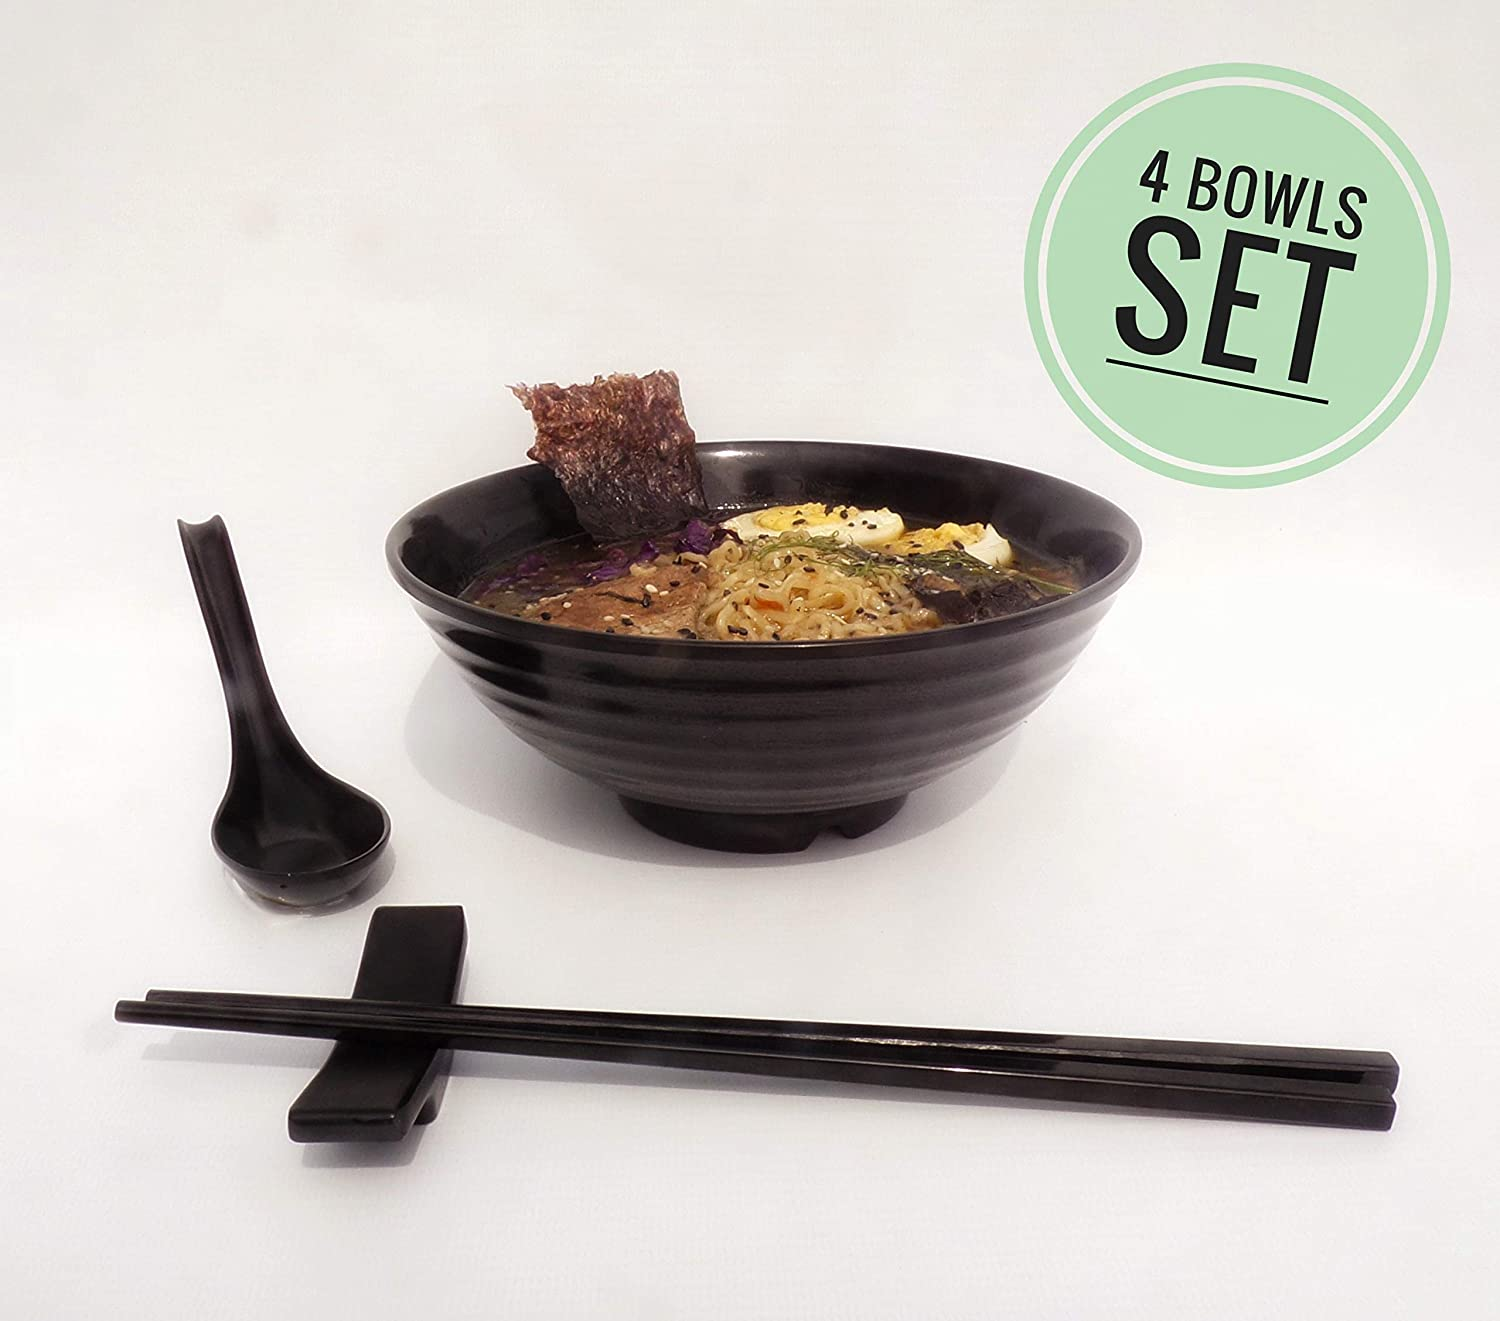 4 set (16 piece) Ramen Bowl Set, Asian Japanese Style with Spoons Chopsticks and Stands, Restaurant Quality Melamine, Large 32 oz for Noodles, Pho, Noodle, Udon, Thai dinnerware for any Soup Meal